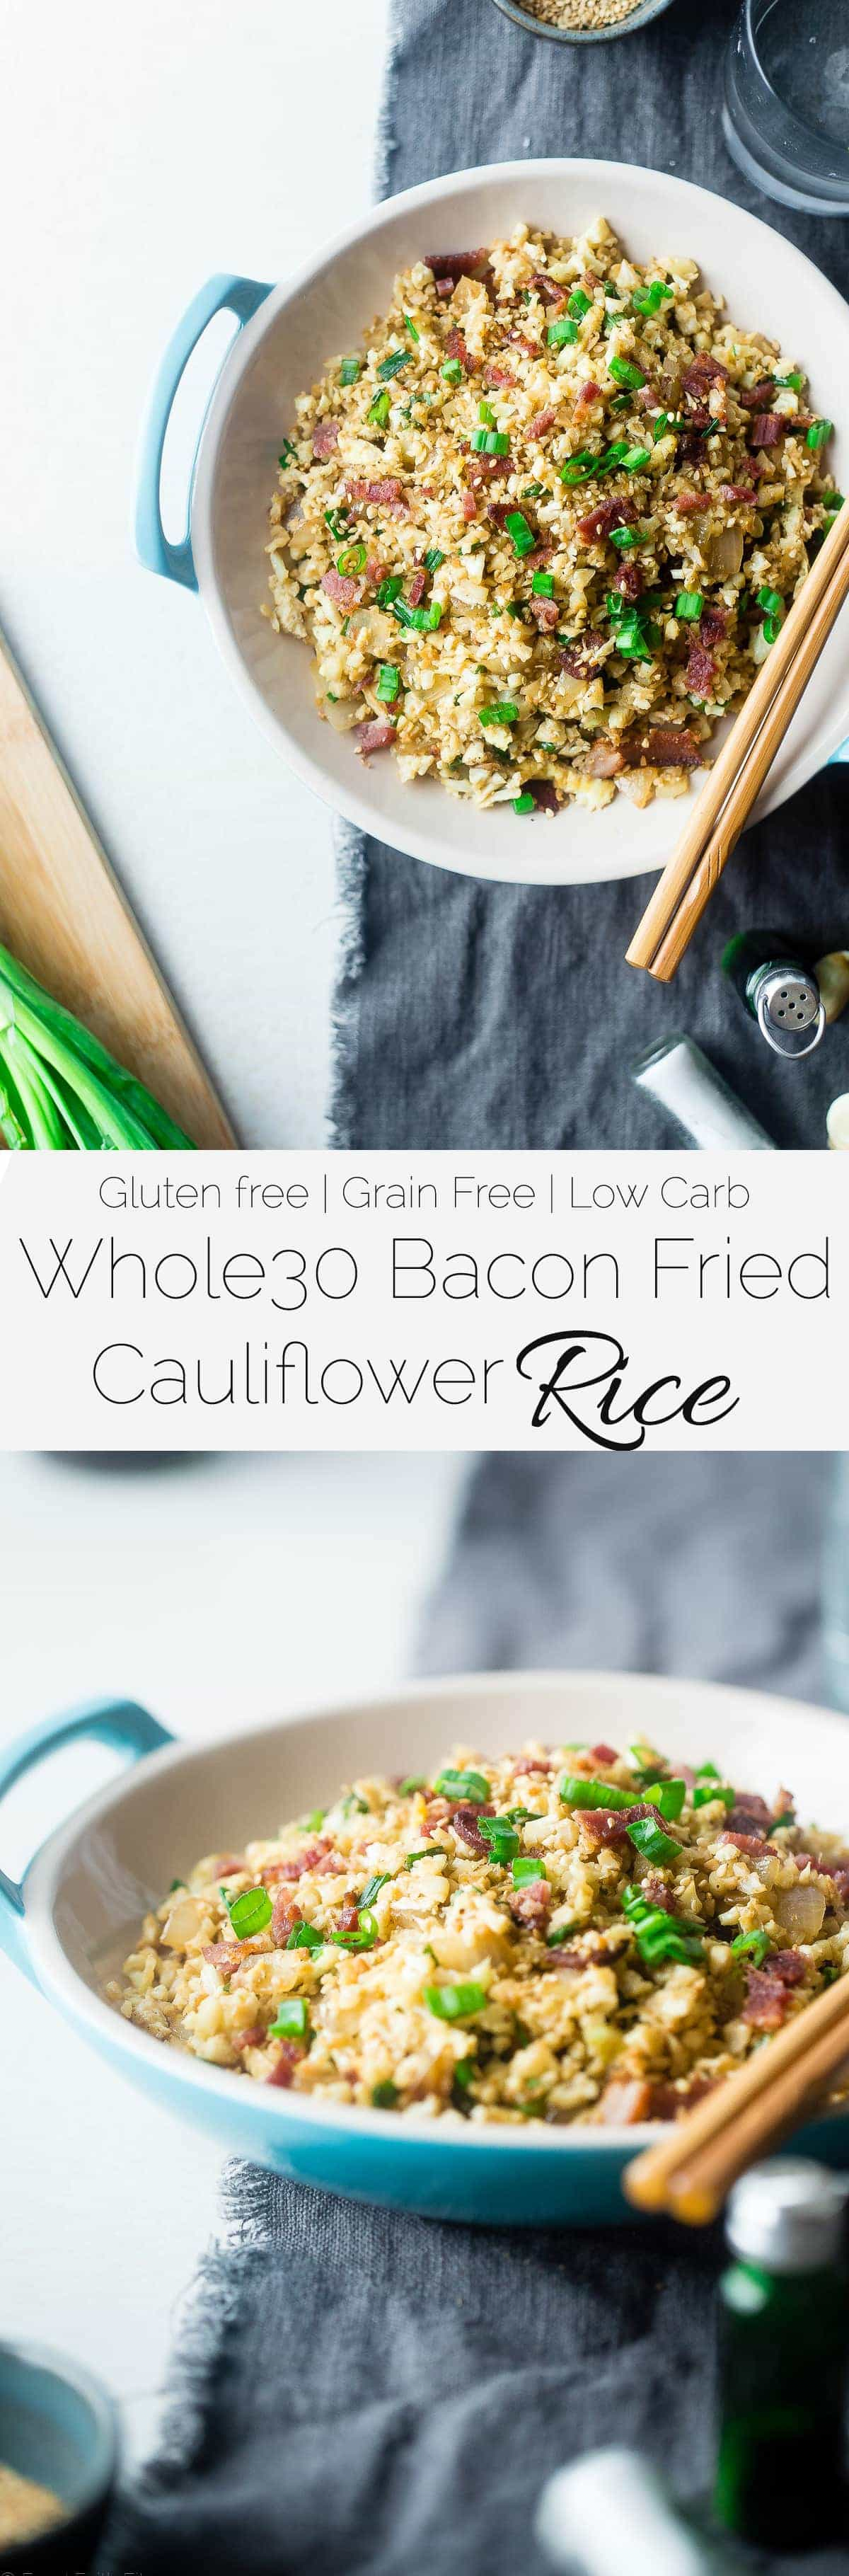 Whole30 Bacon Cauliflower Fried Rice - This lower carb, healthy cauliflower fried rice uses bacon instead of chicken to make it extra delicious! It's an easy, family-friendly weeknight meal for under 250 calories! | Foodfaithfitness.com | @FoodFaithFit